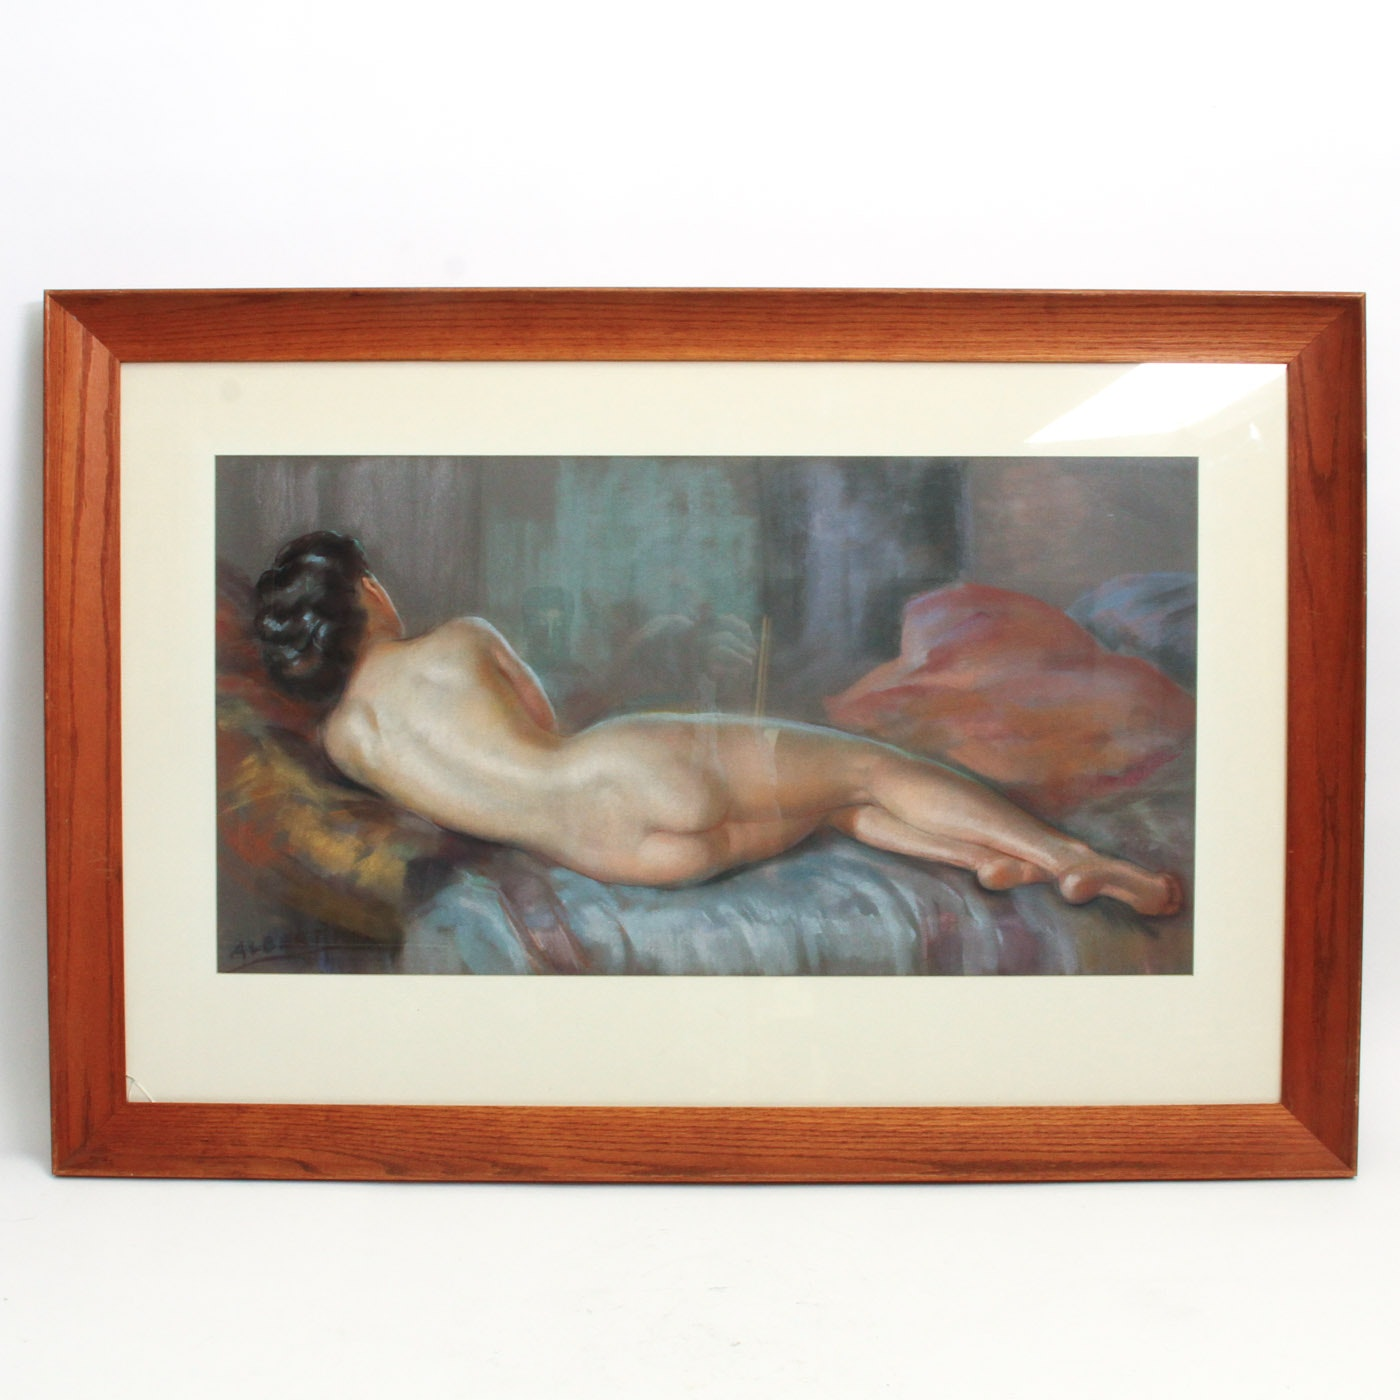 Albert Framed Pastel Drawing of a Nude Woman